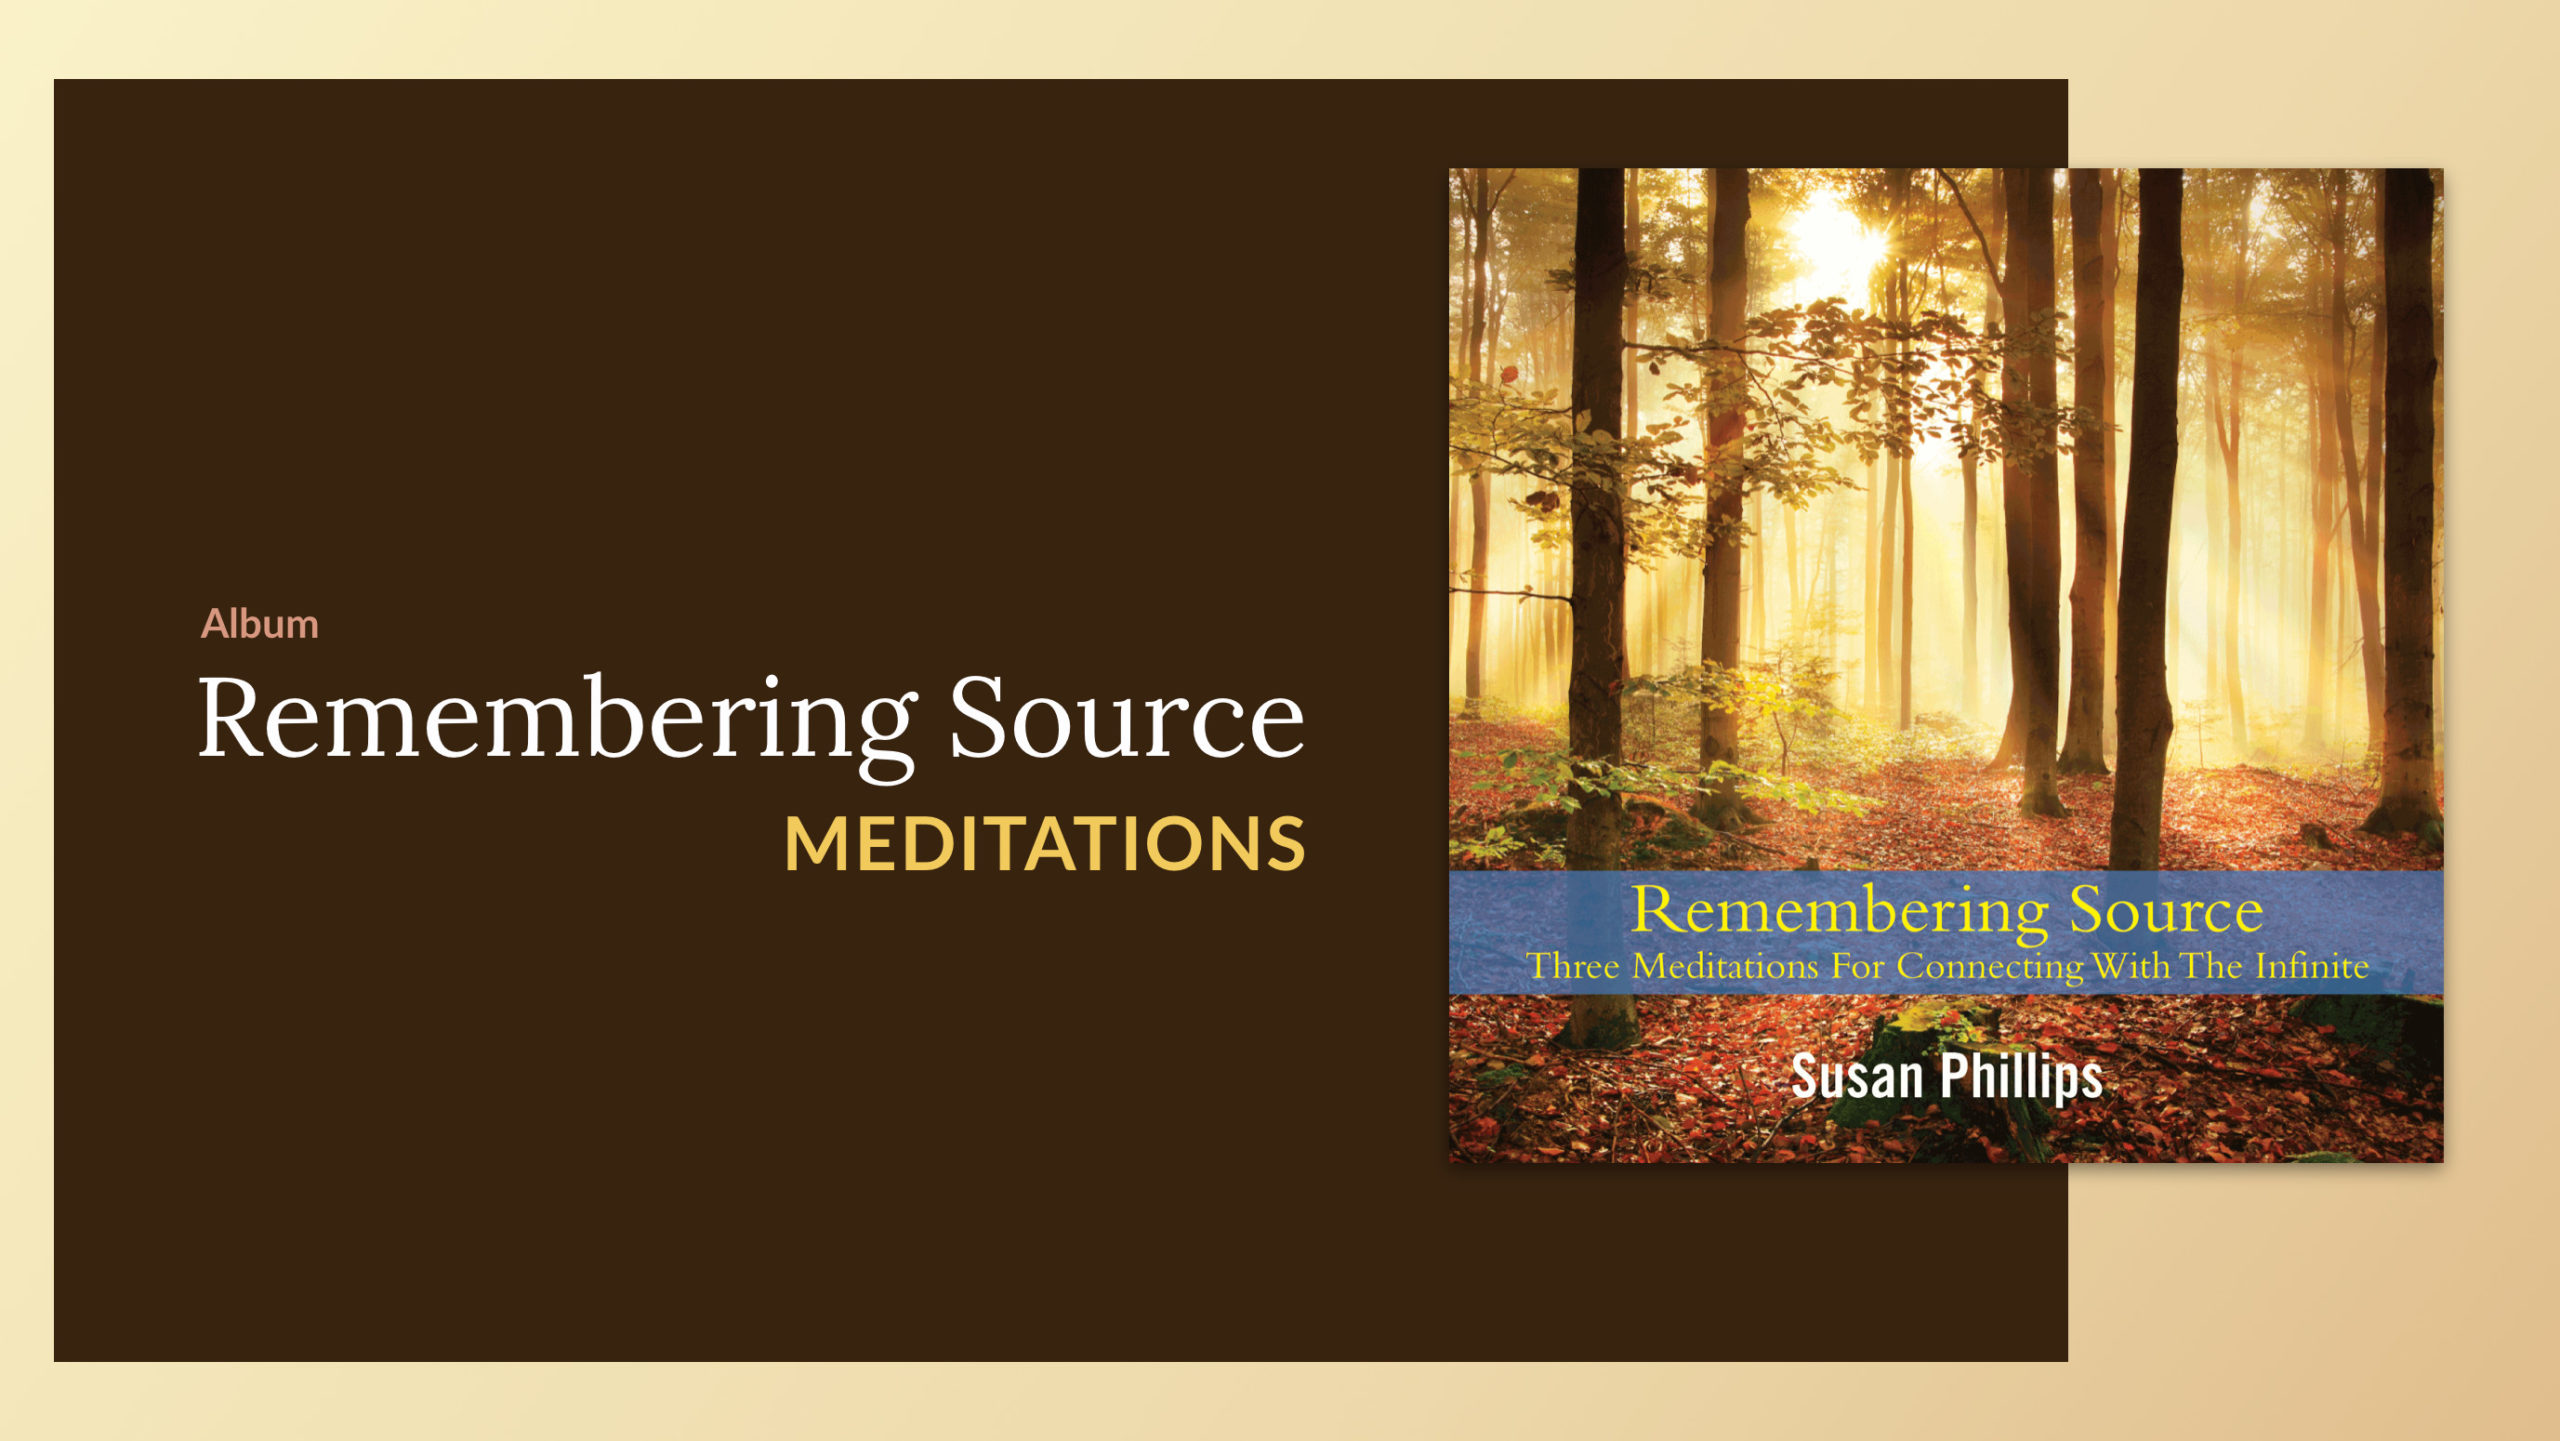 Remembering Source: an album of meditations